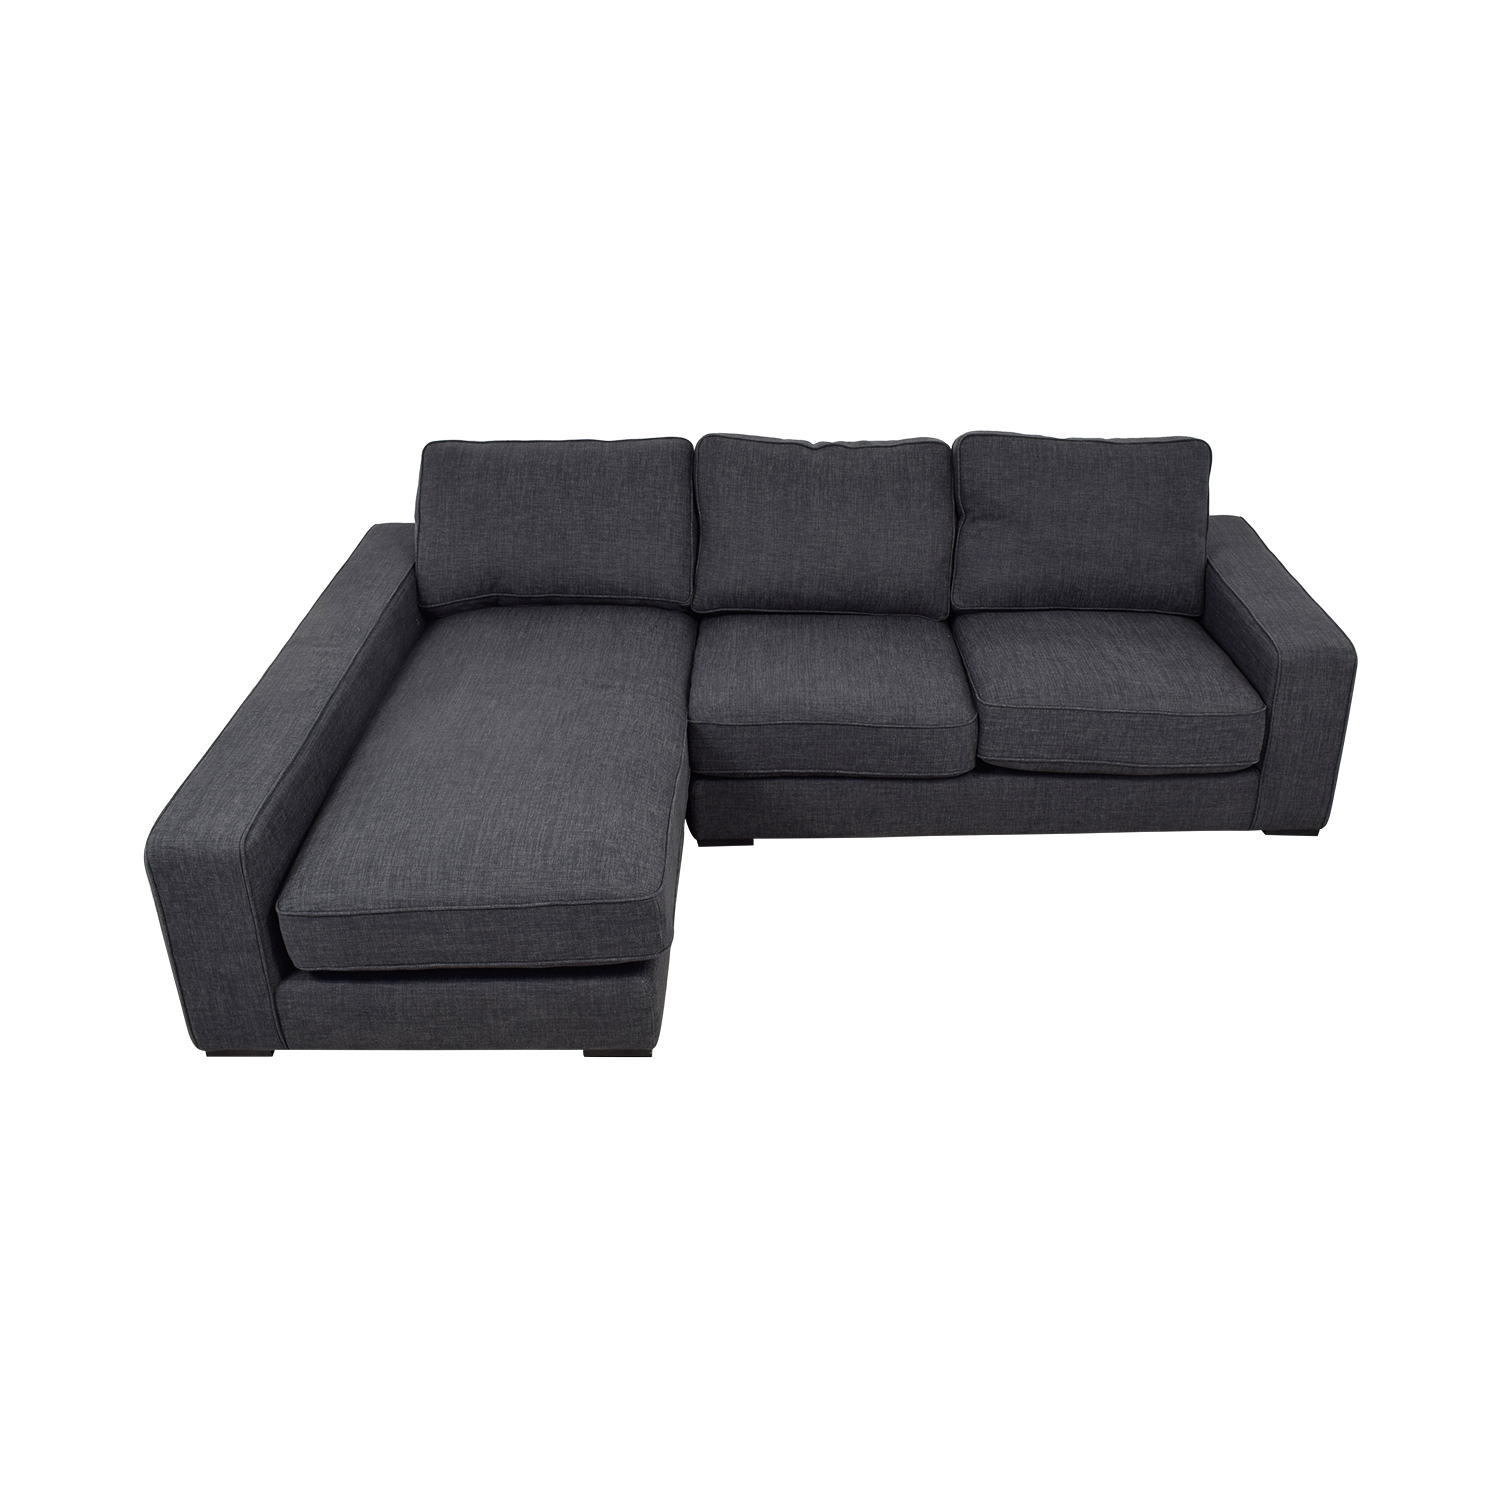 Ainsley	Pebble Weave Left Chaise Sectional Sofas